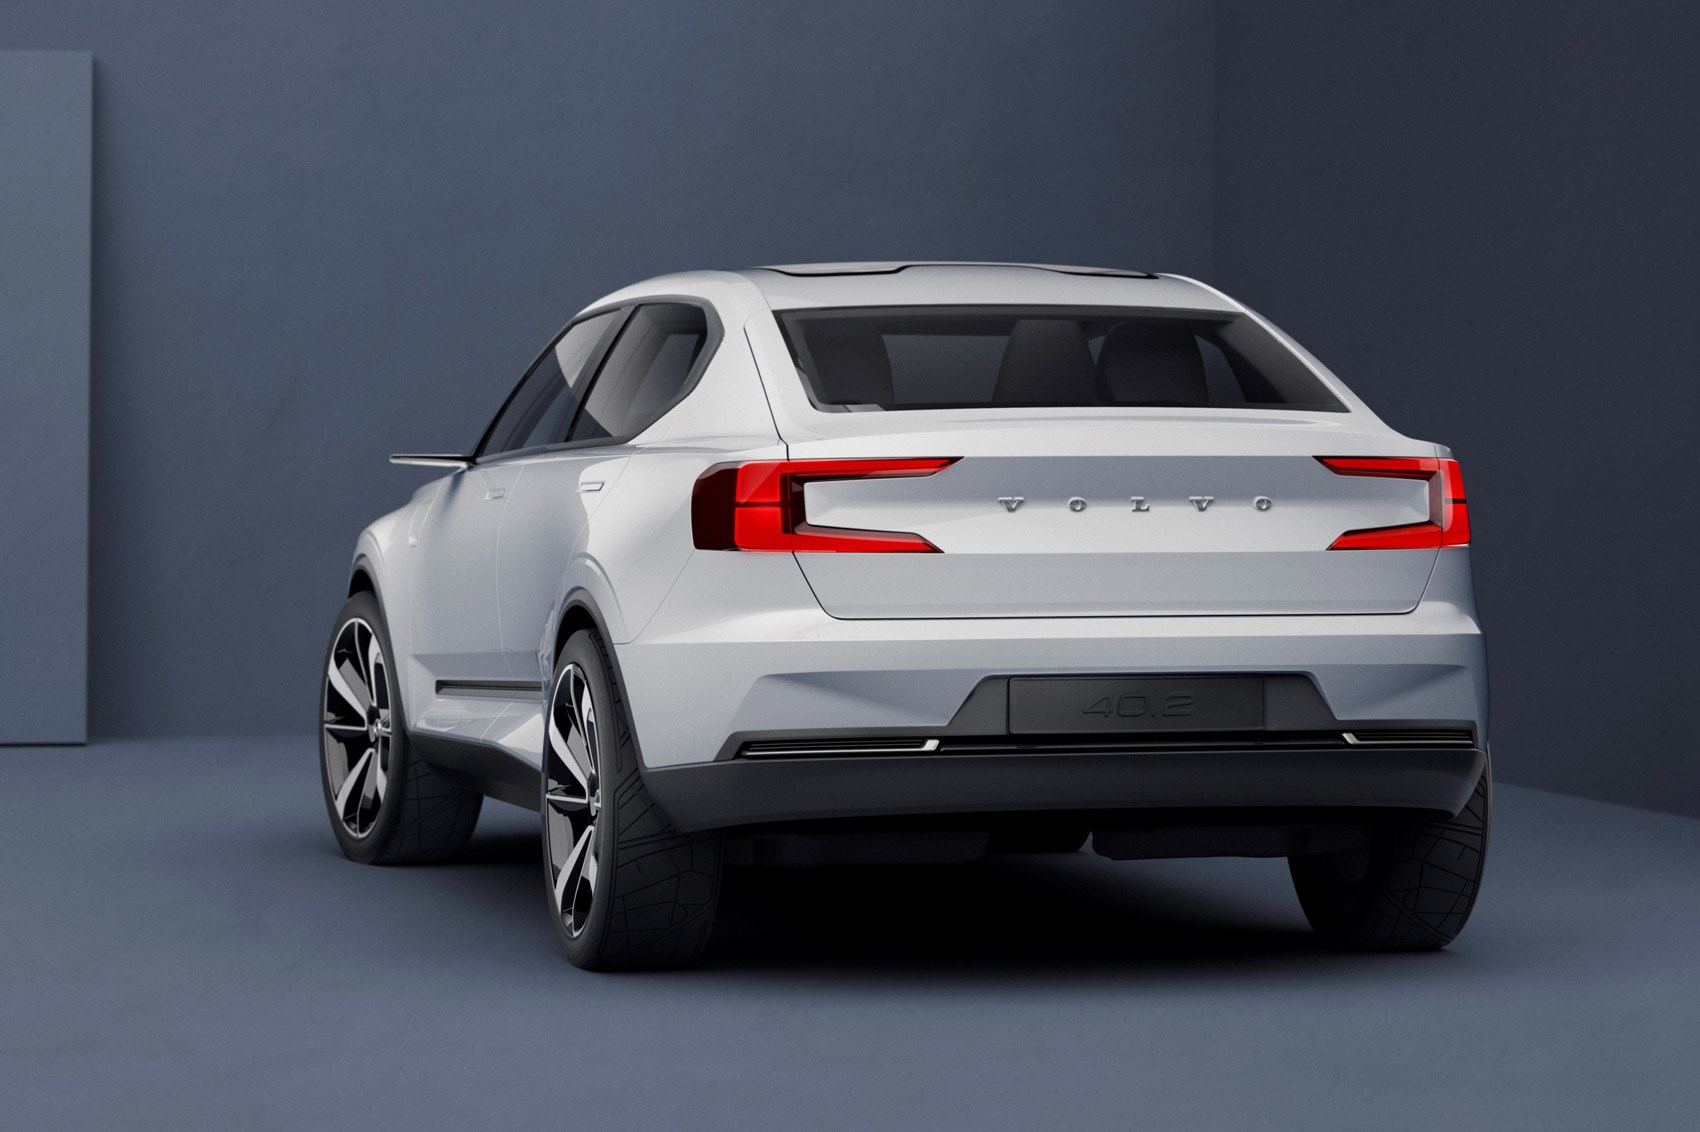 Volvo previews new 40-series models with double concept car unveil